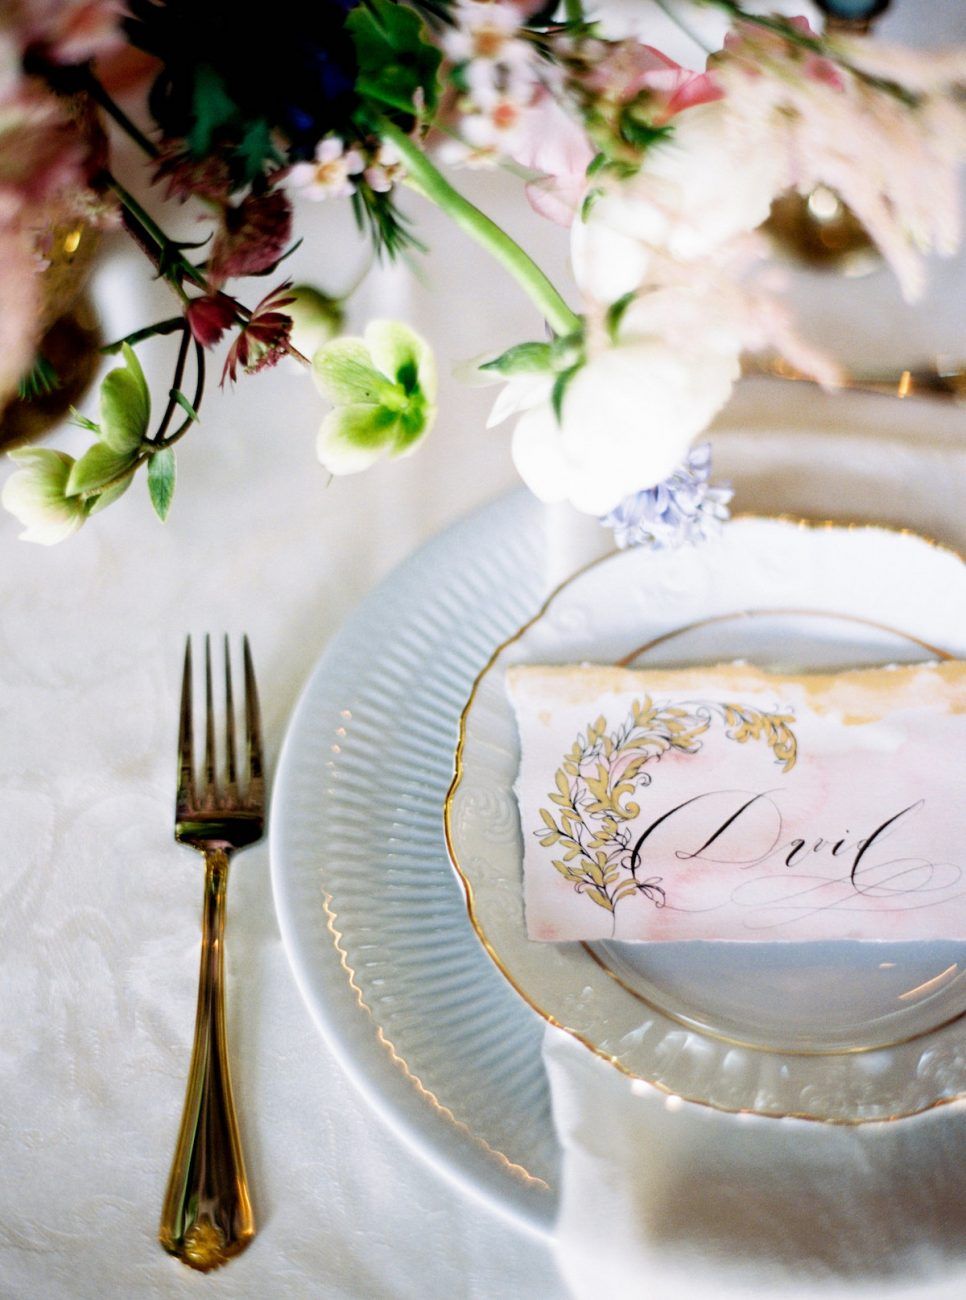 Palace Wedding Inspiration - pink place name with gold hand painted designs